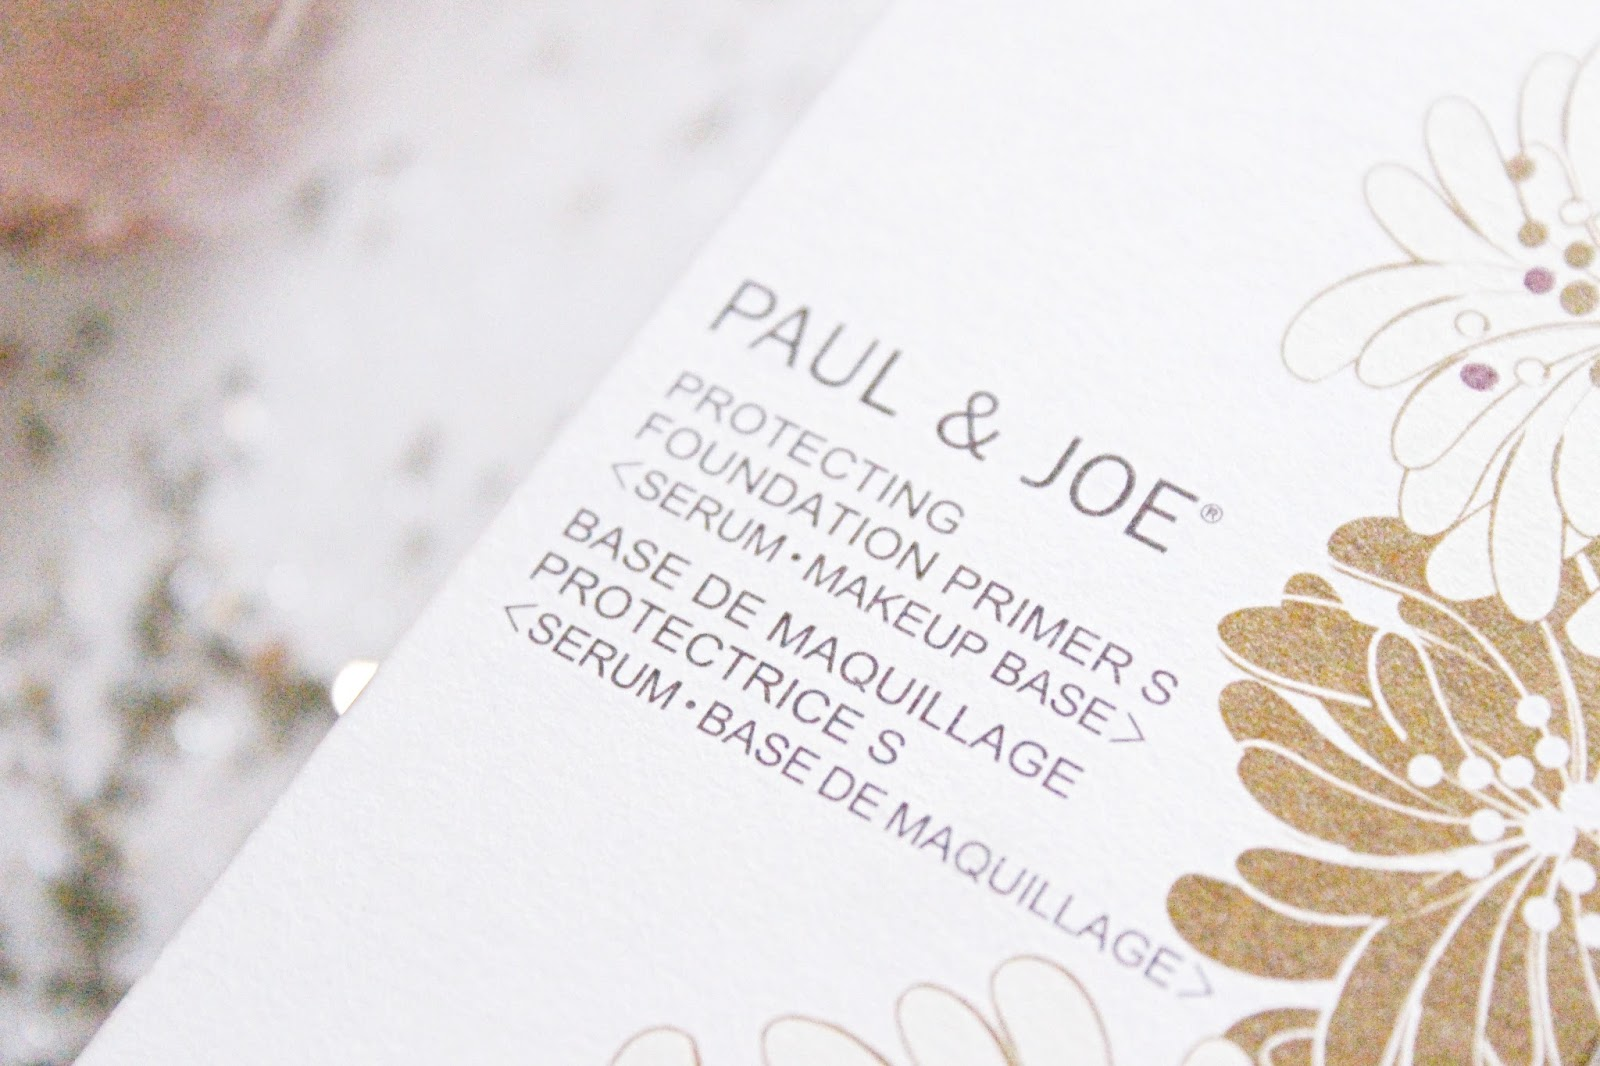 Base Maquillage Paul & Joe